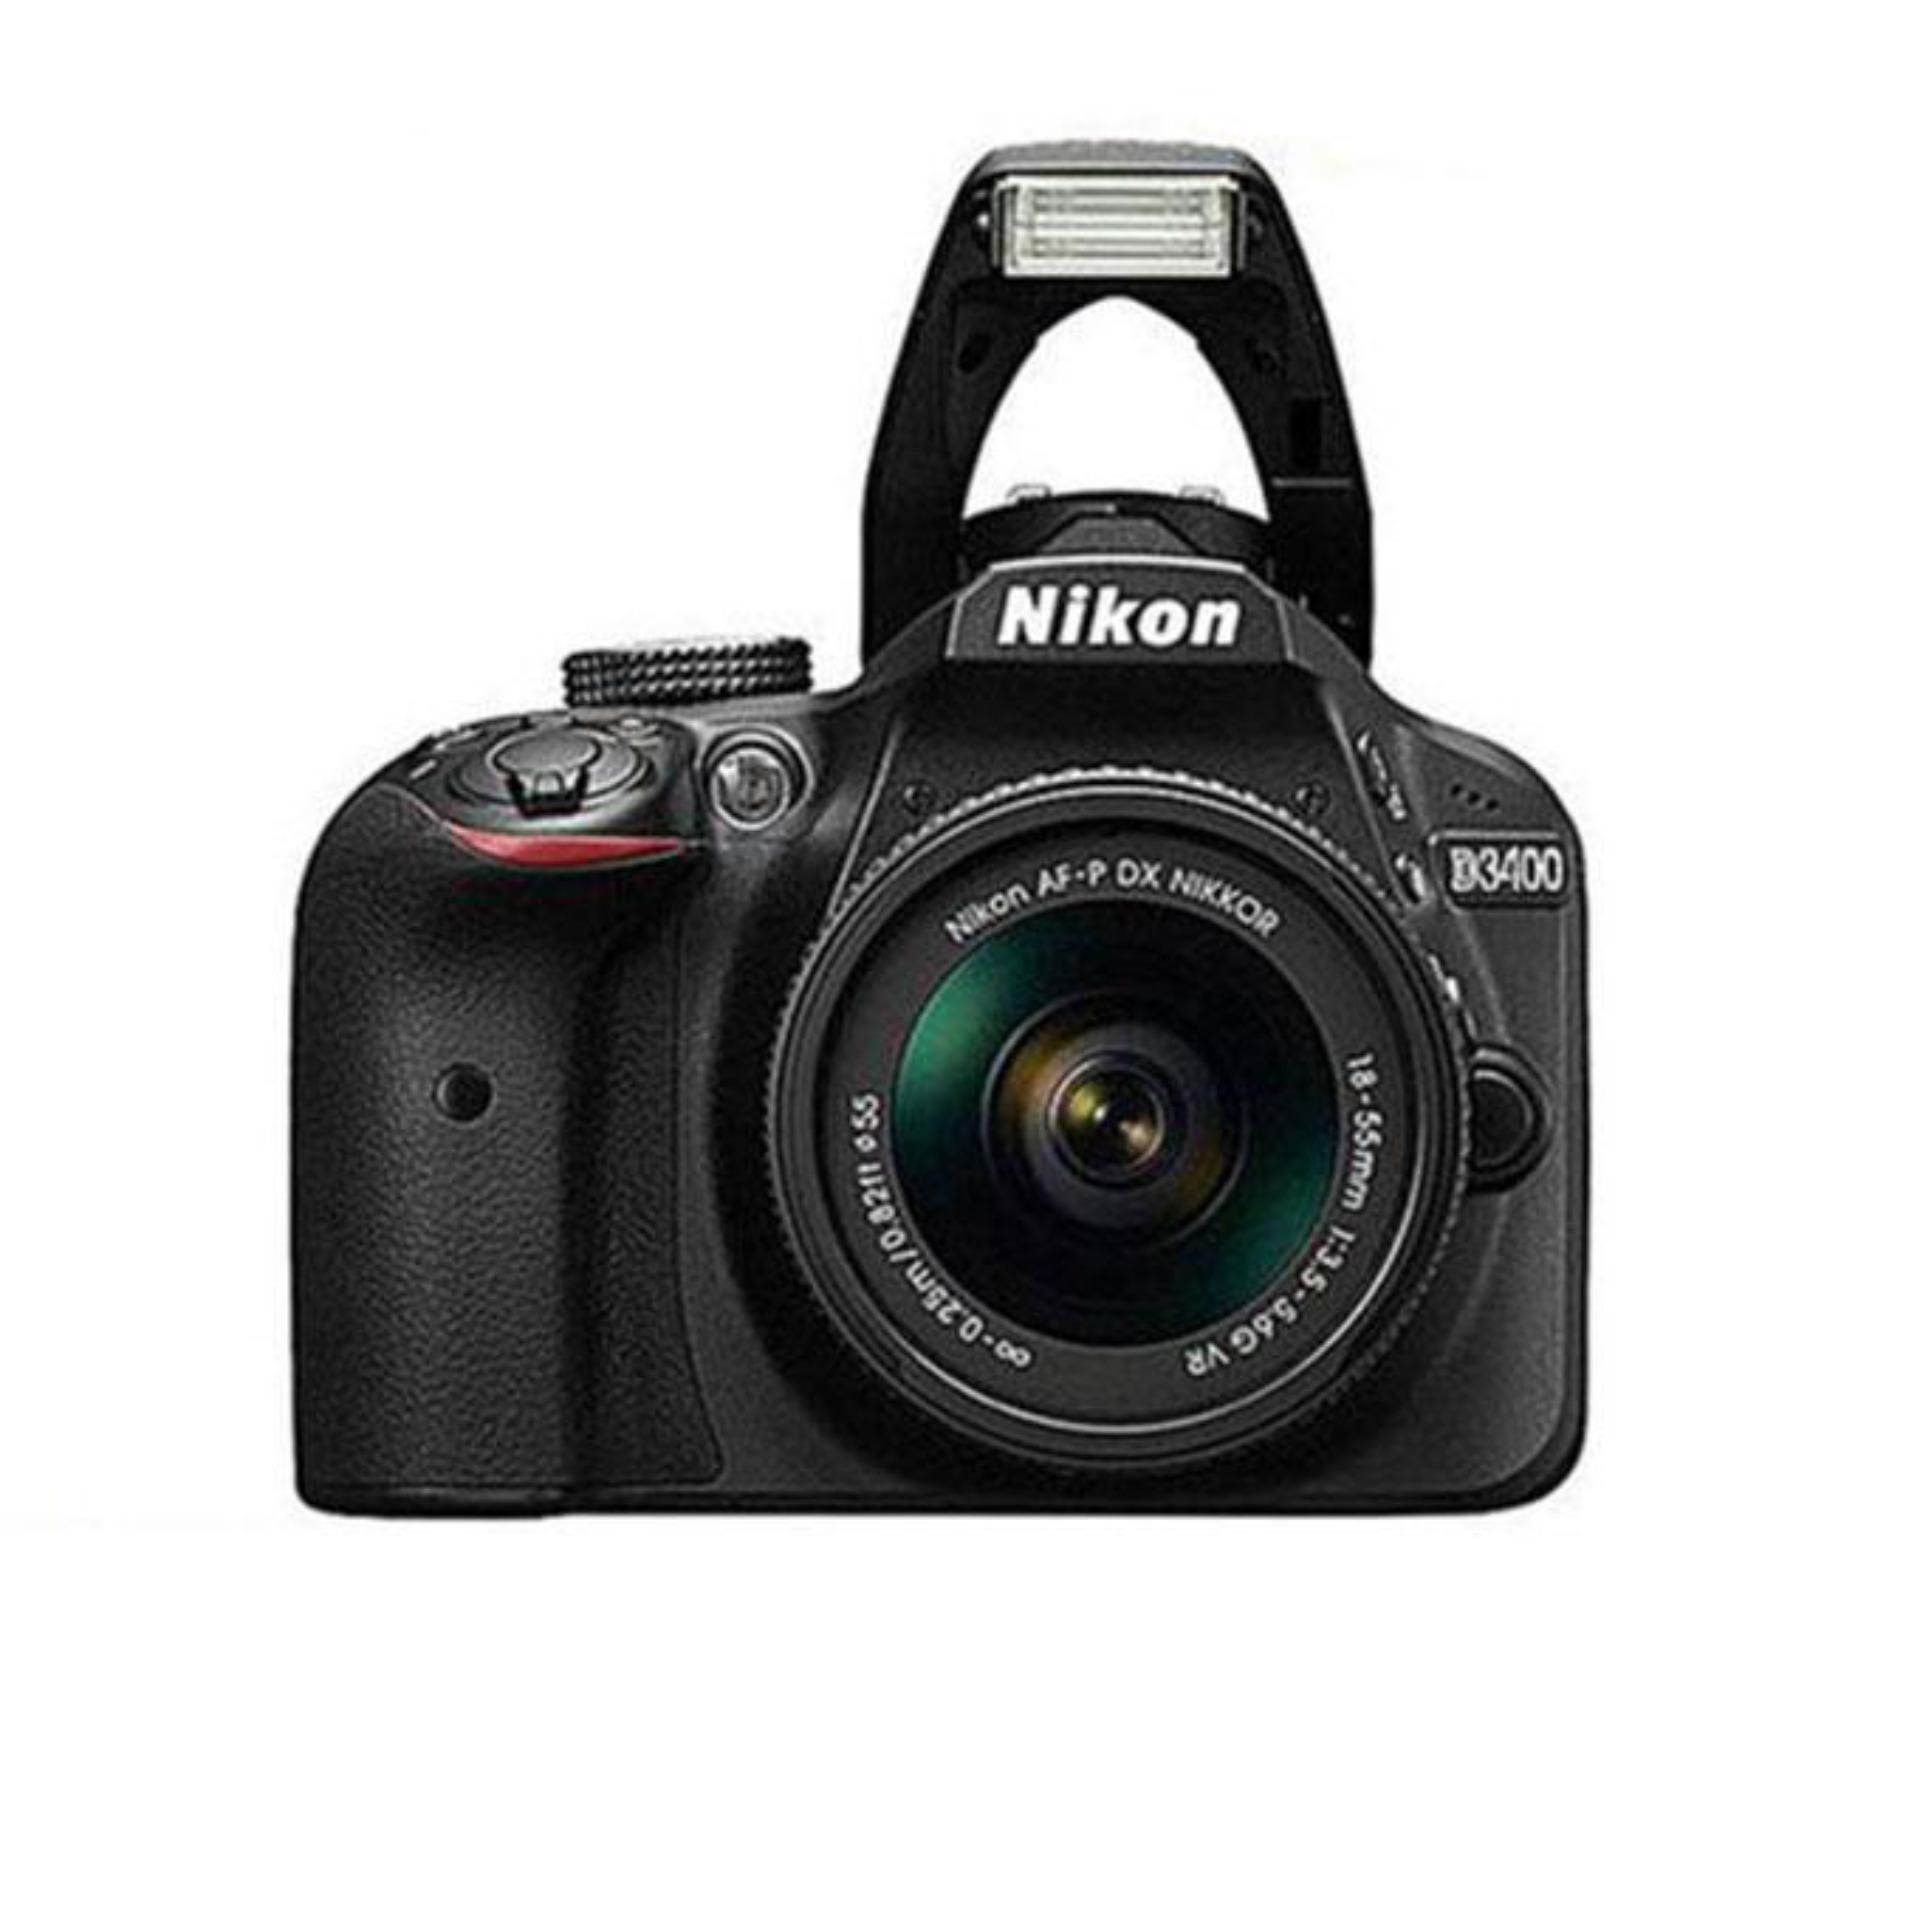 Nikon Buy At Best Price In Bangladesh Cleaning Kit 7 1 D3400 242mp Dslr Camera With 18 55mm Lens Black